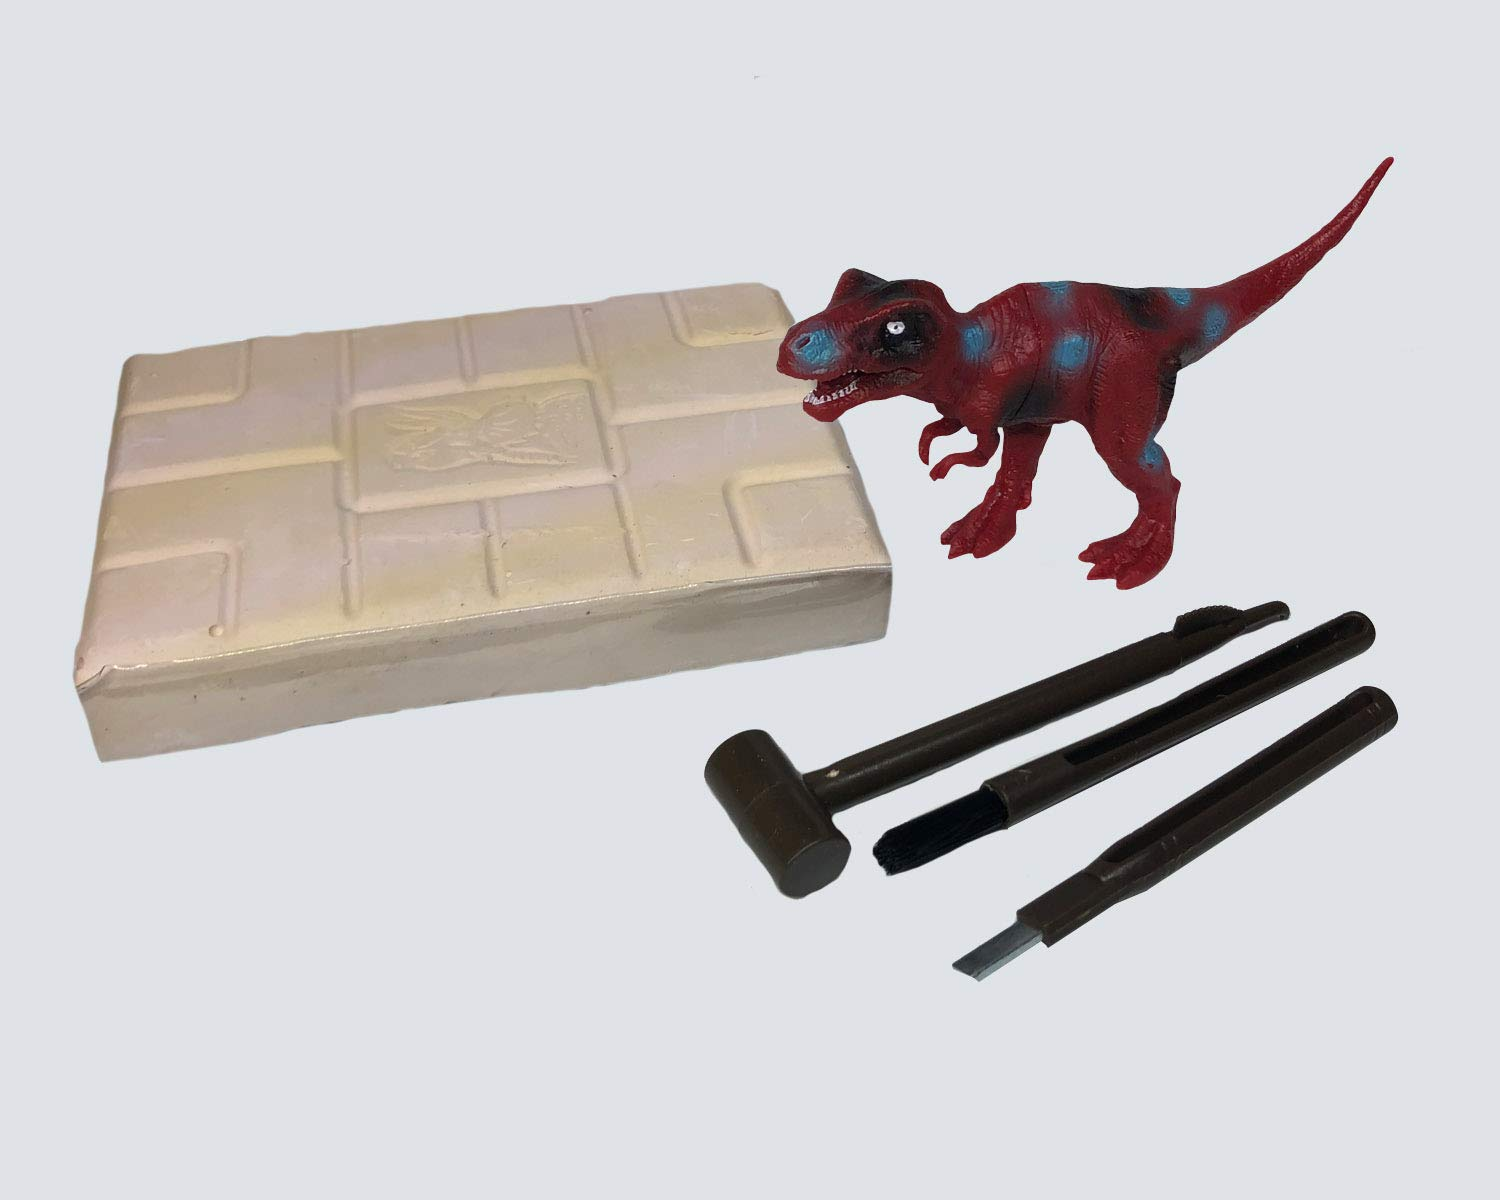 T-Rex Dinosaur Excavation Tools-Wooden Excavationtools-Fun and Classic  Games-Child Science kit-Discovery Fossil Dig Great Science, Archeology,